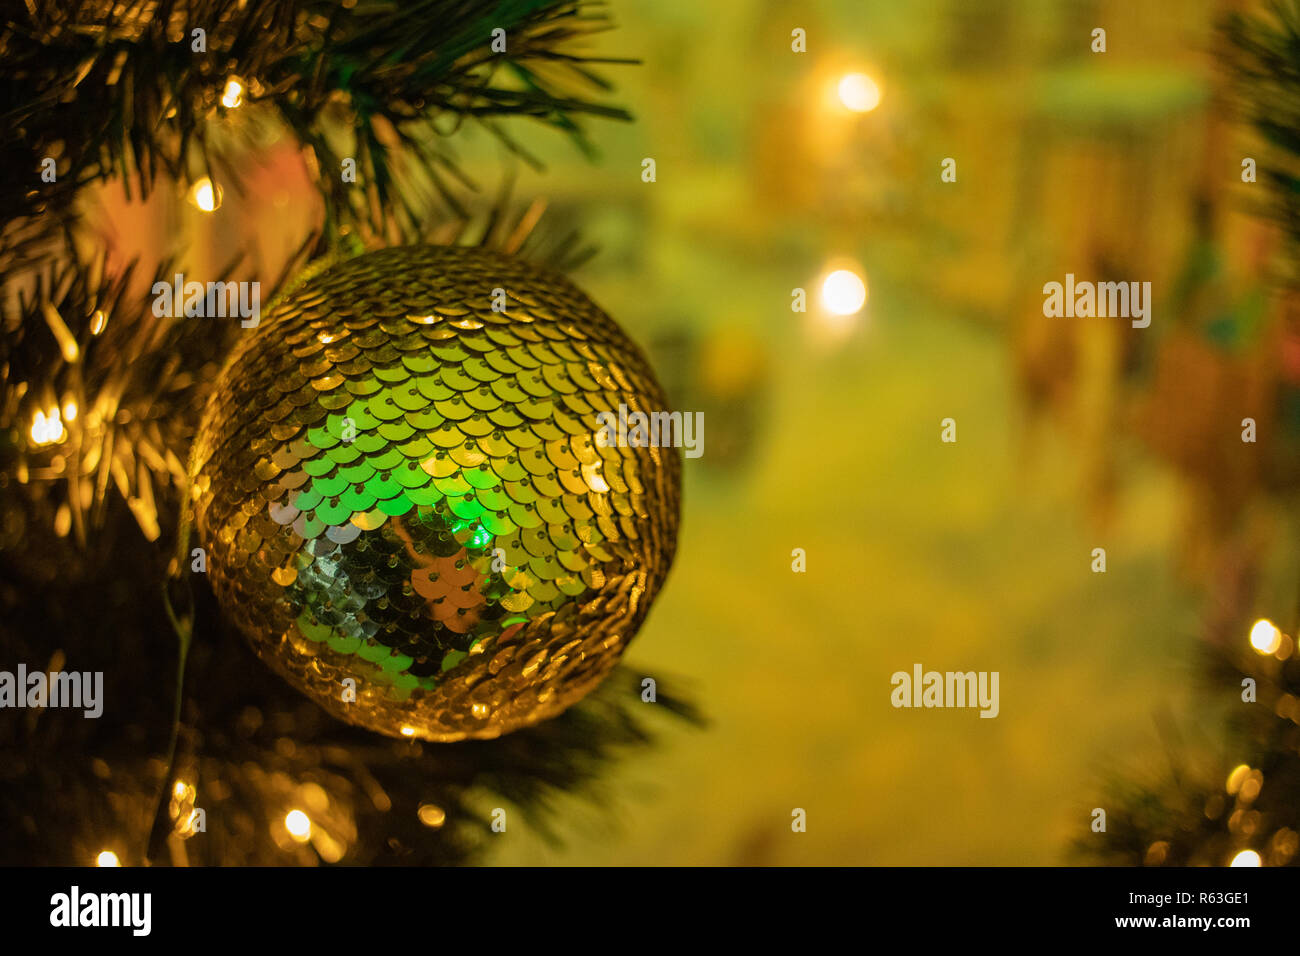 Golden Bauble On A Christmas Tree With Christmas Lights In The